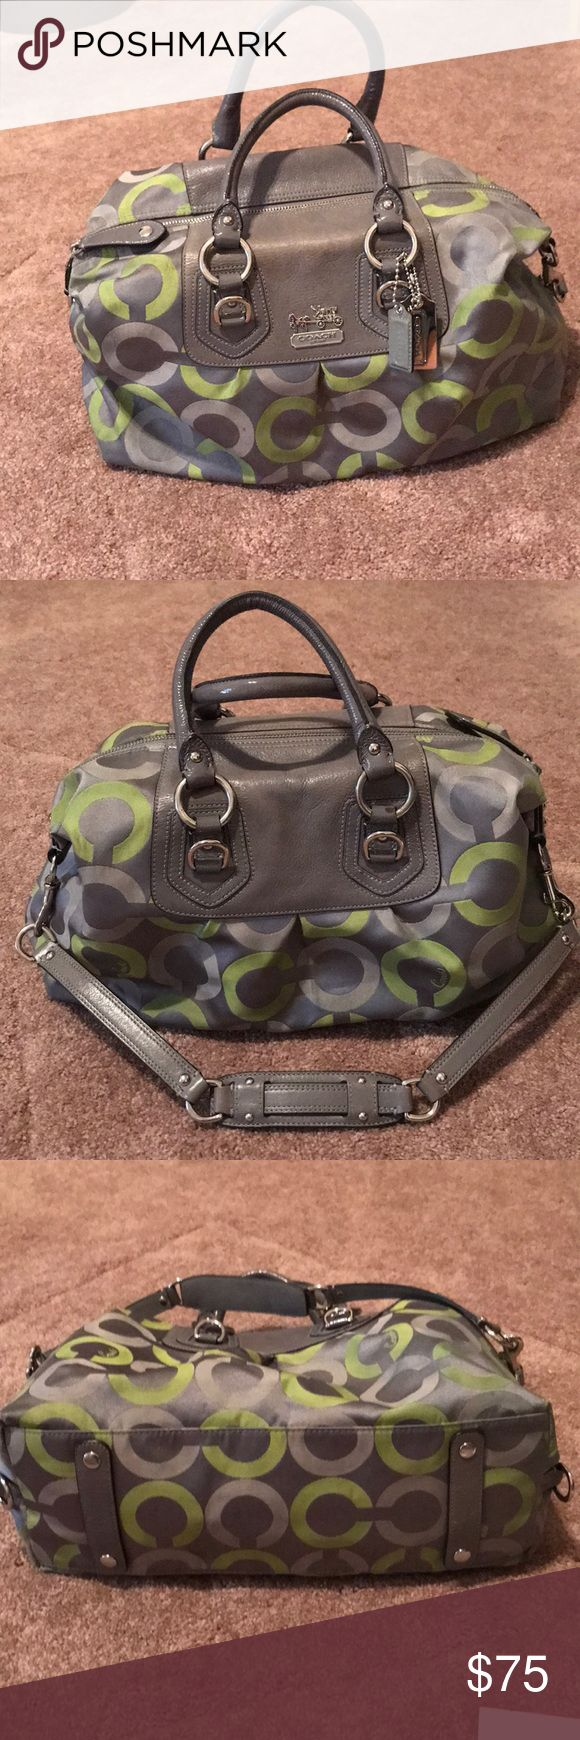 Large Coach tote LARGE COACH MADISON Op Art Sabrina Satchel 13862Designer: (Limited Edition) . Treated to repel water and resist stains.  Silver Coach logo hardware on exterior of gray leather. One interior zip pocket. Lined beautifully in contrasting olive satin material. It's multicolored of: Graphite Silvers, Olives and Grays. This (Limited Edition) item is no longer available in Coach Stores. The MSRP is: $398 . SERIAL NUMBER: D0982-13862 Coach Bags Totes